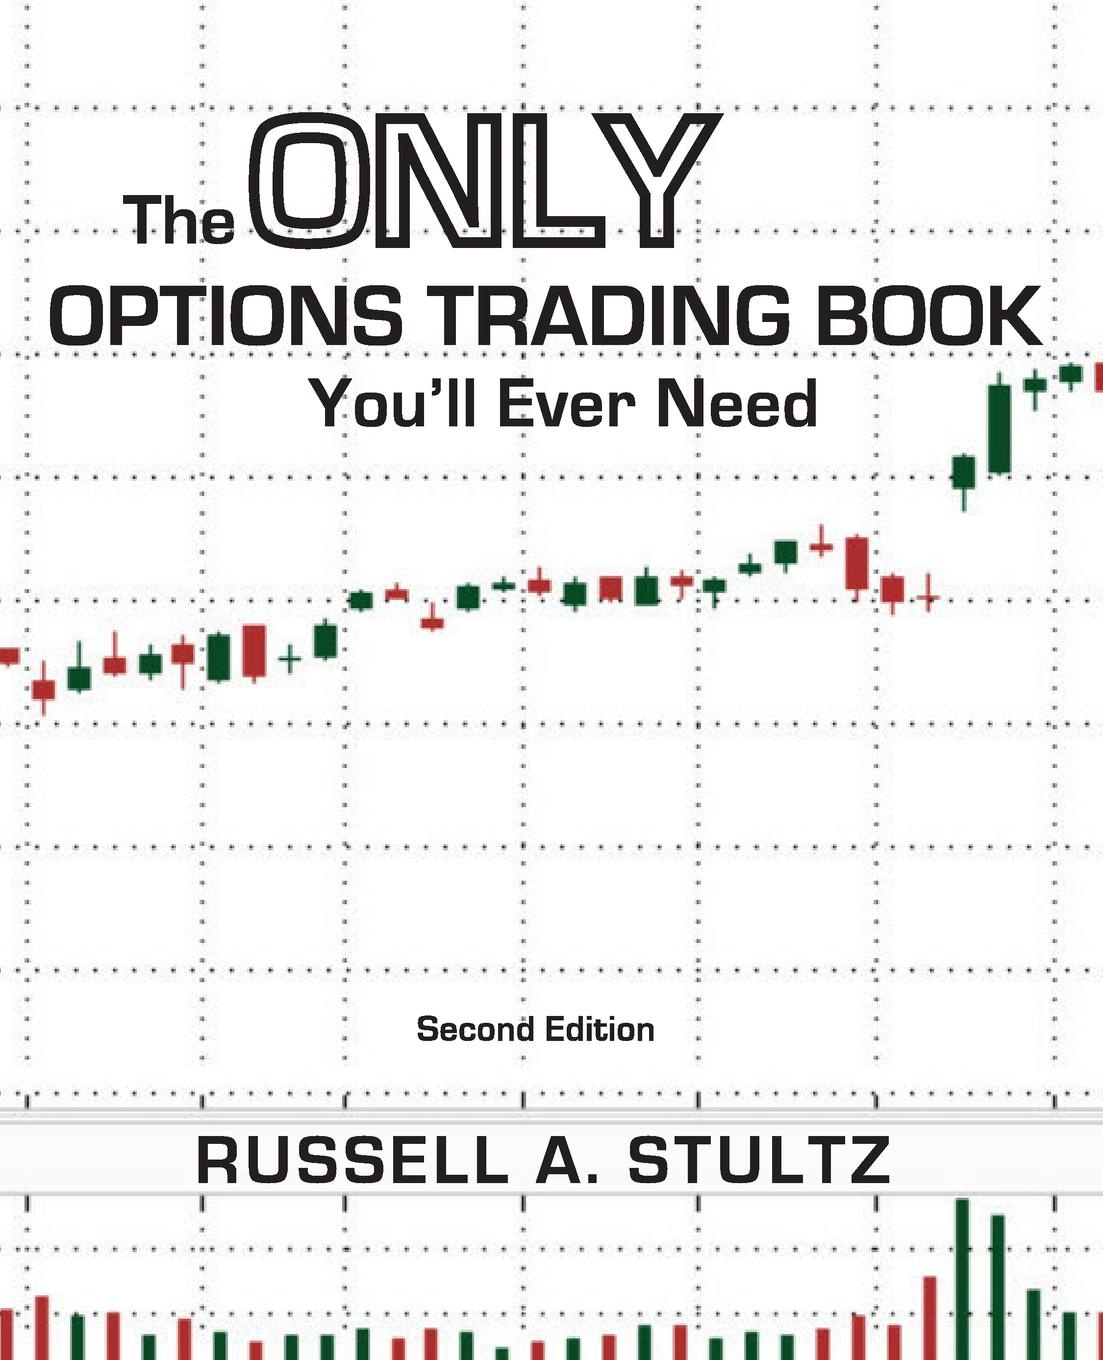 Russell Allen Stultz The Only Options Trading Book You'll Ever Need (Second Edition) george fontanills a trade options online